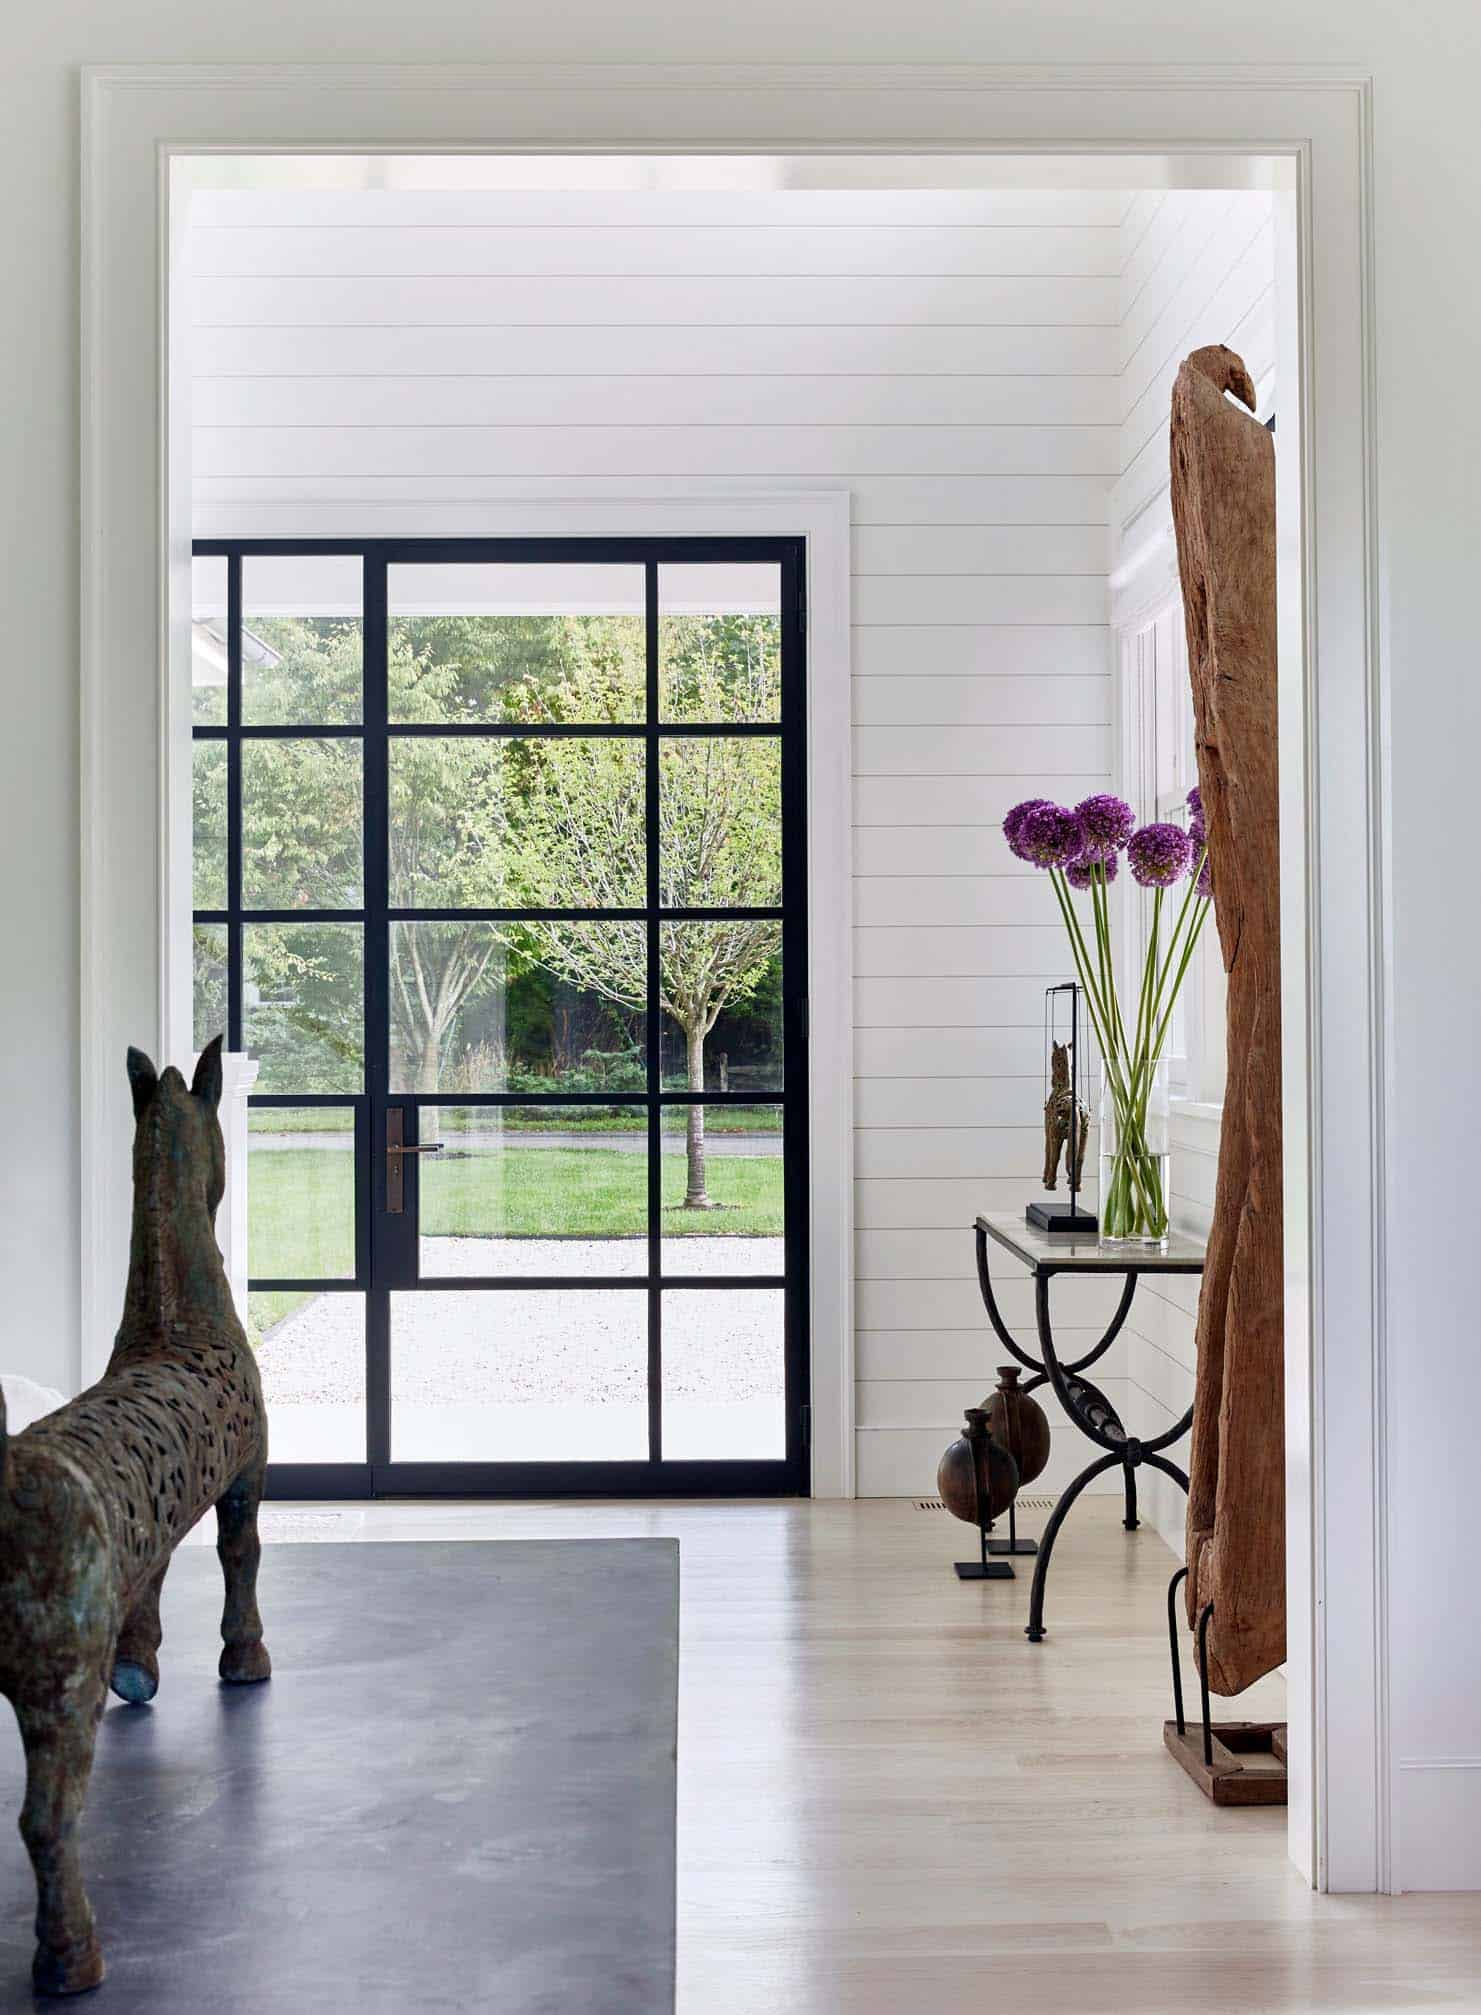 Amagansett Beach House-Chango-Co-02-1 Kindesign